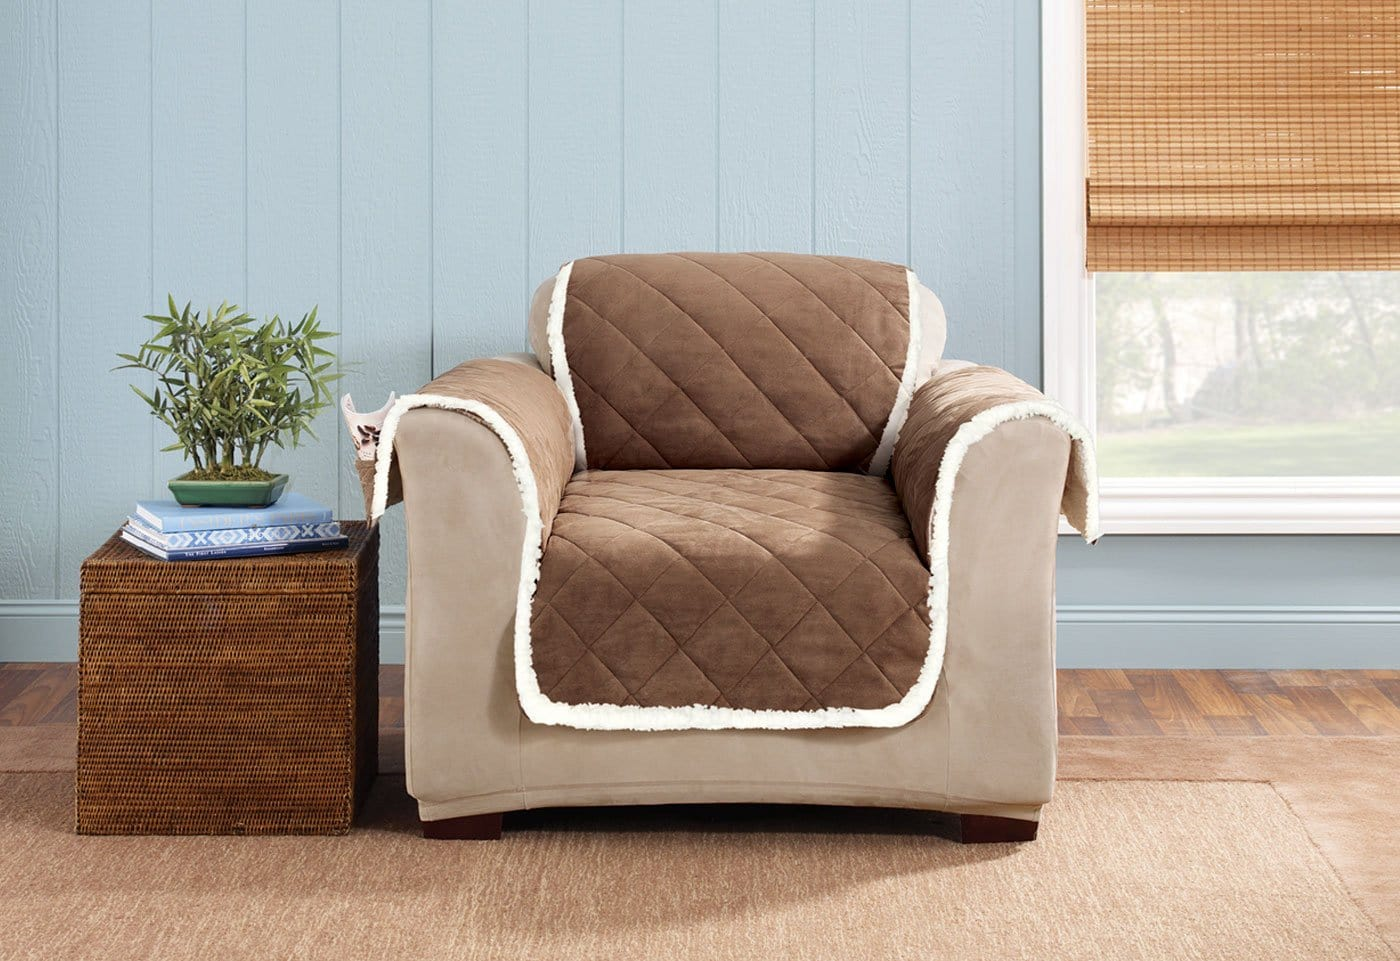 Soft Suede & Sherpa Chair Furniture Cover 100% Polyester Pet Furniture Cover Machine Washable - Chair / Brown/Cream